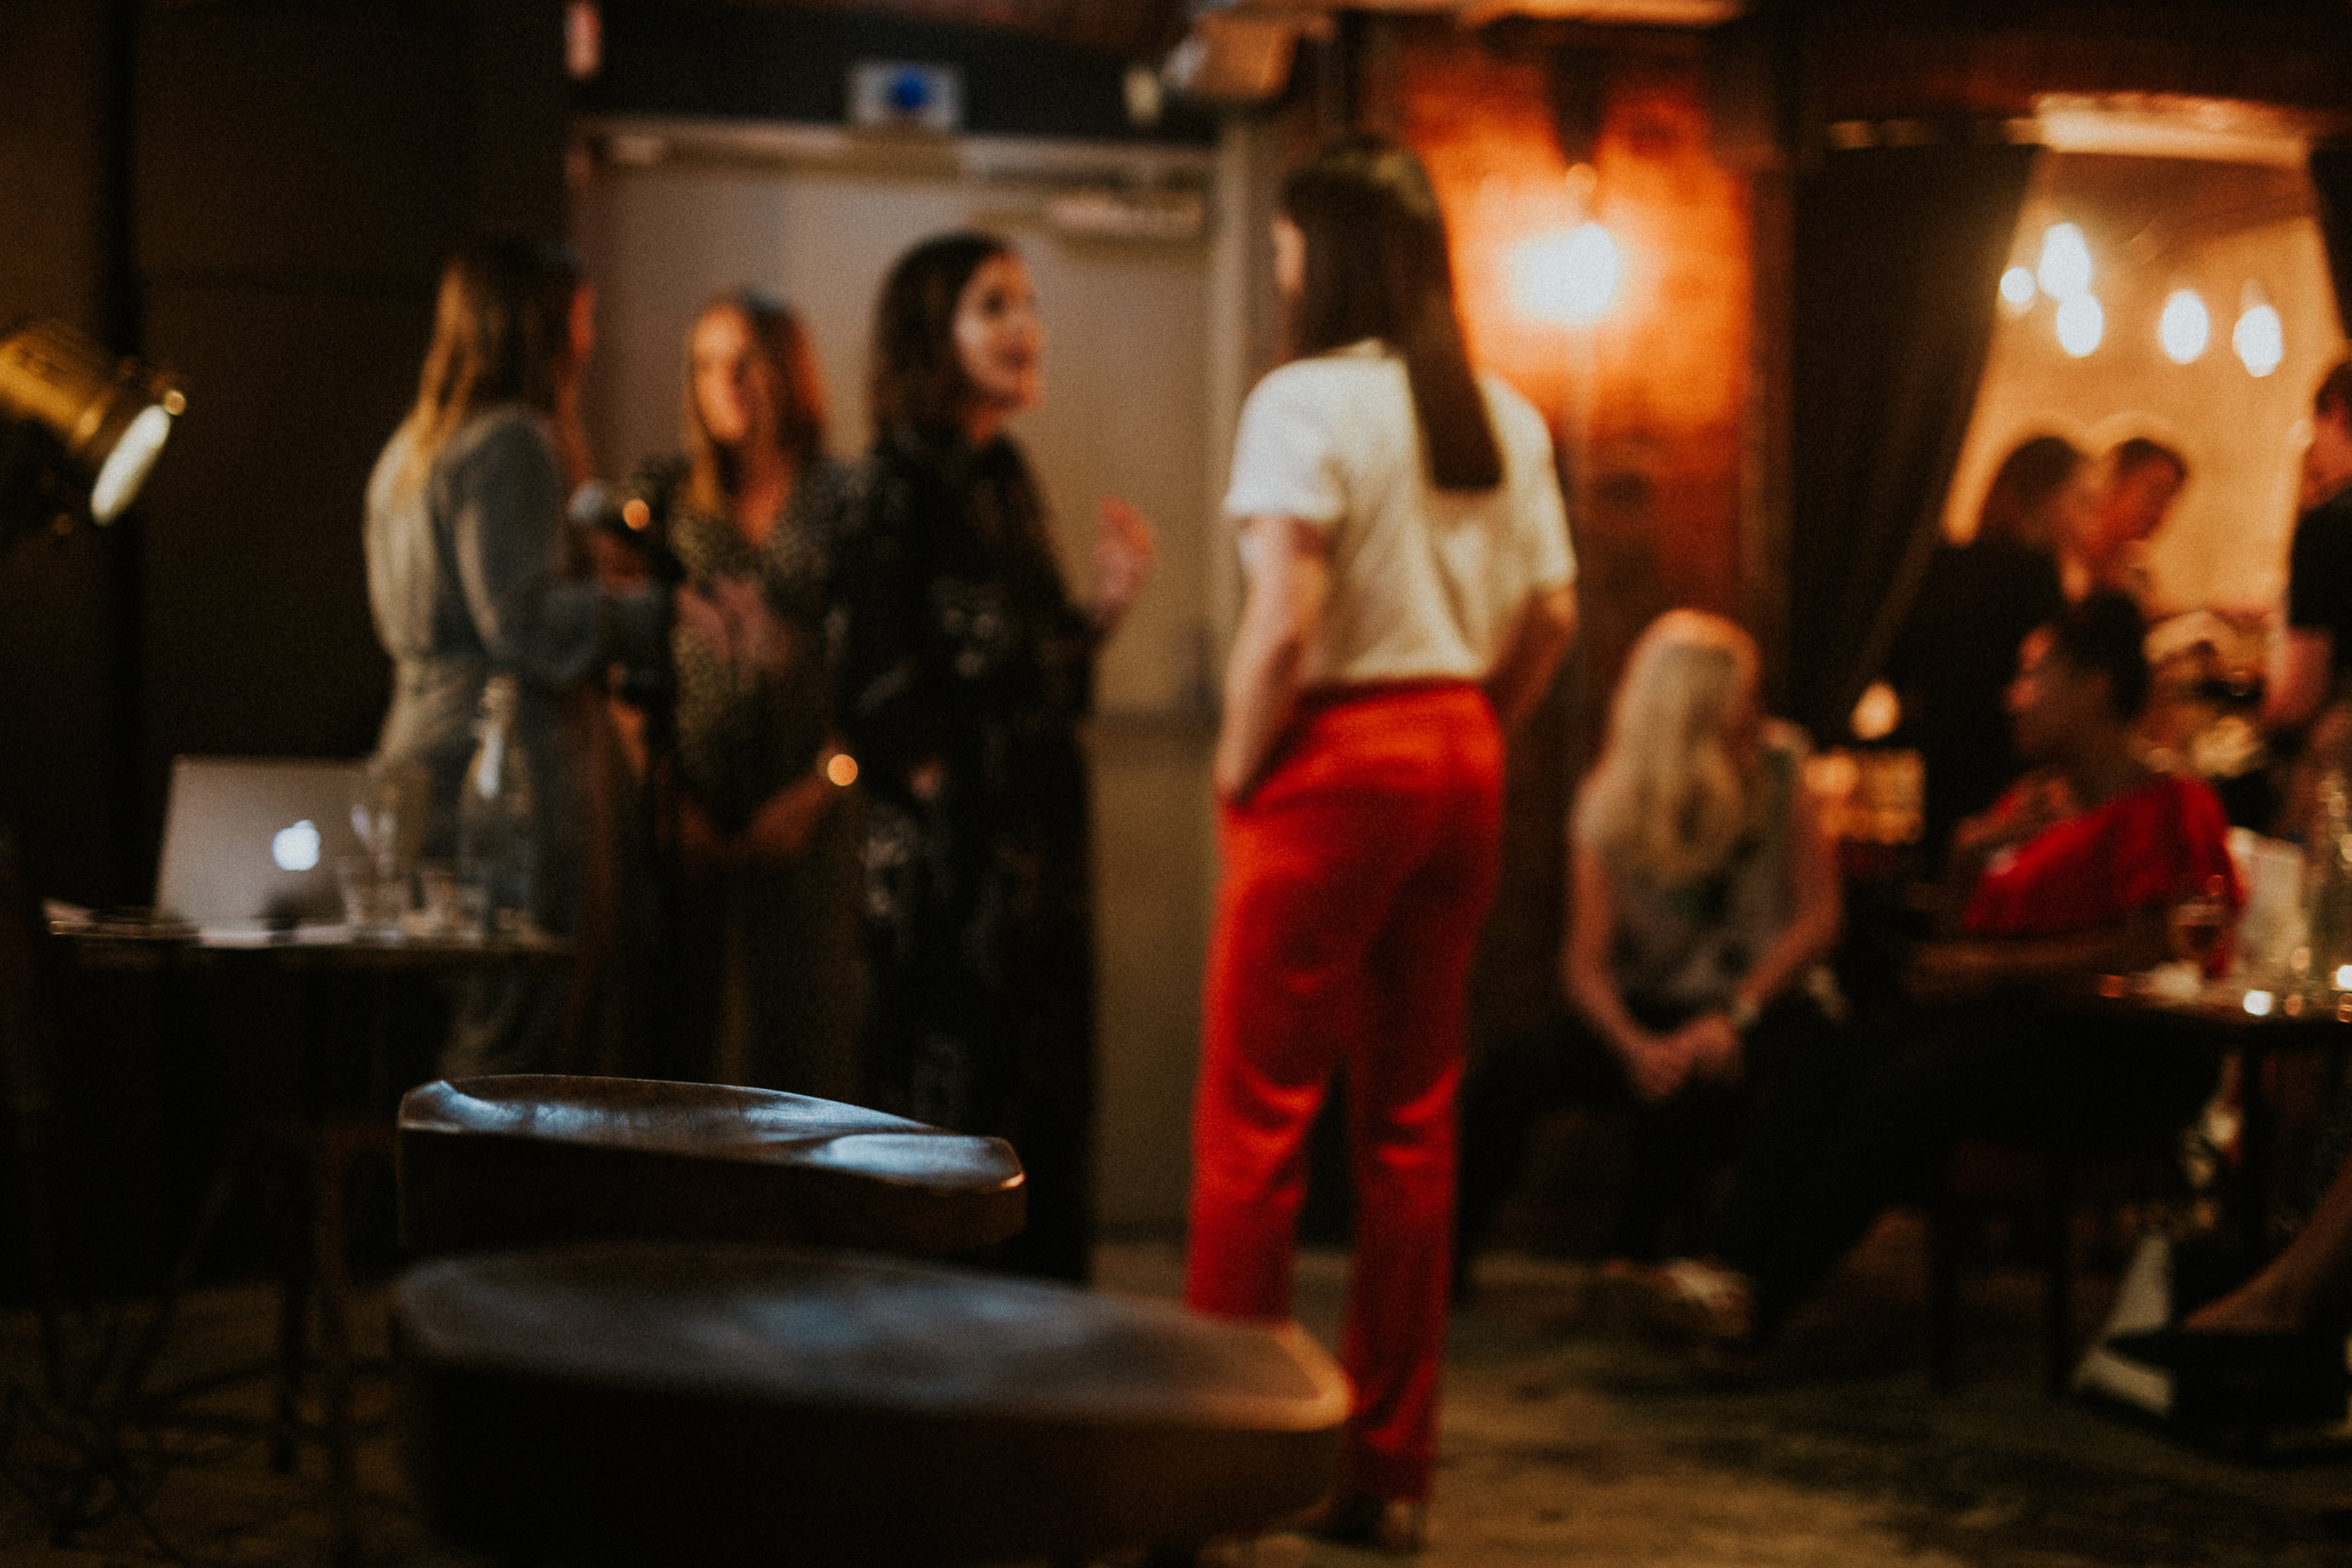 We welcomed 60 female property developers to Baresca Tapas in Nottingham